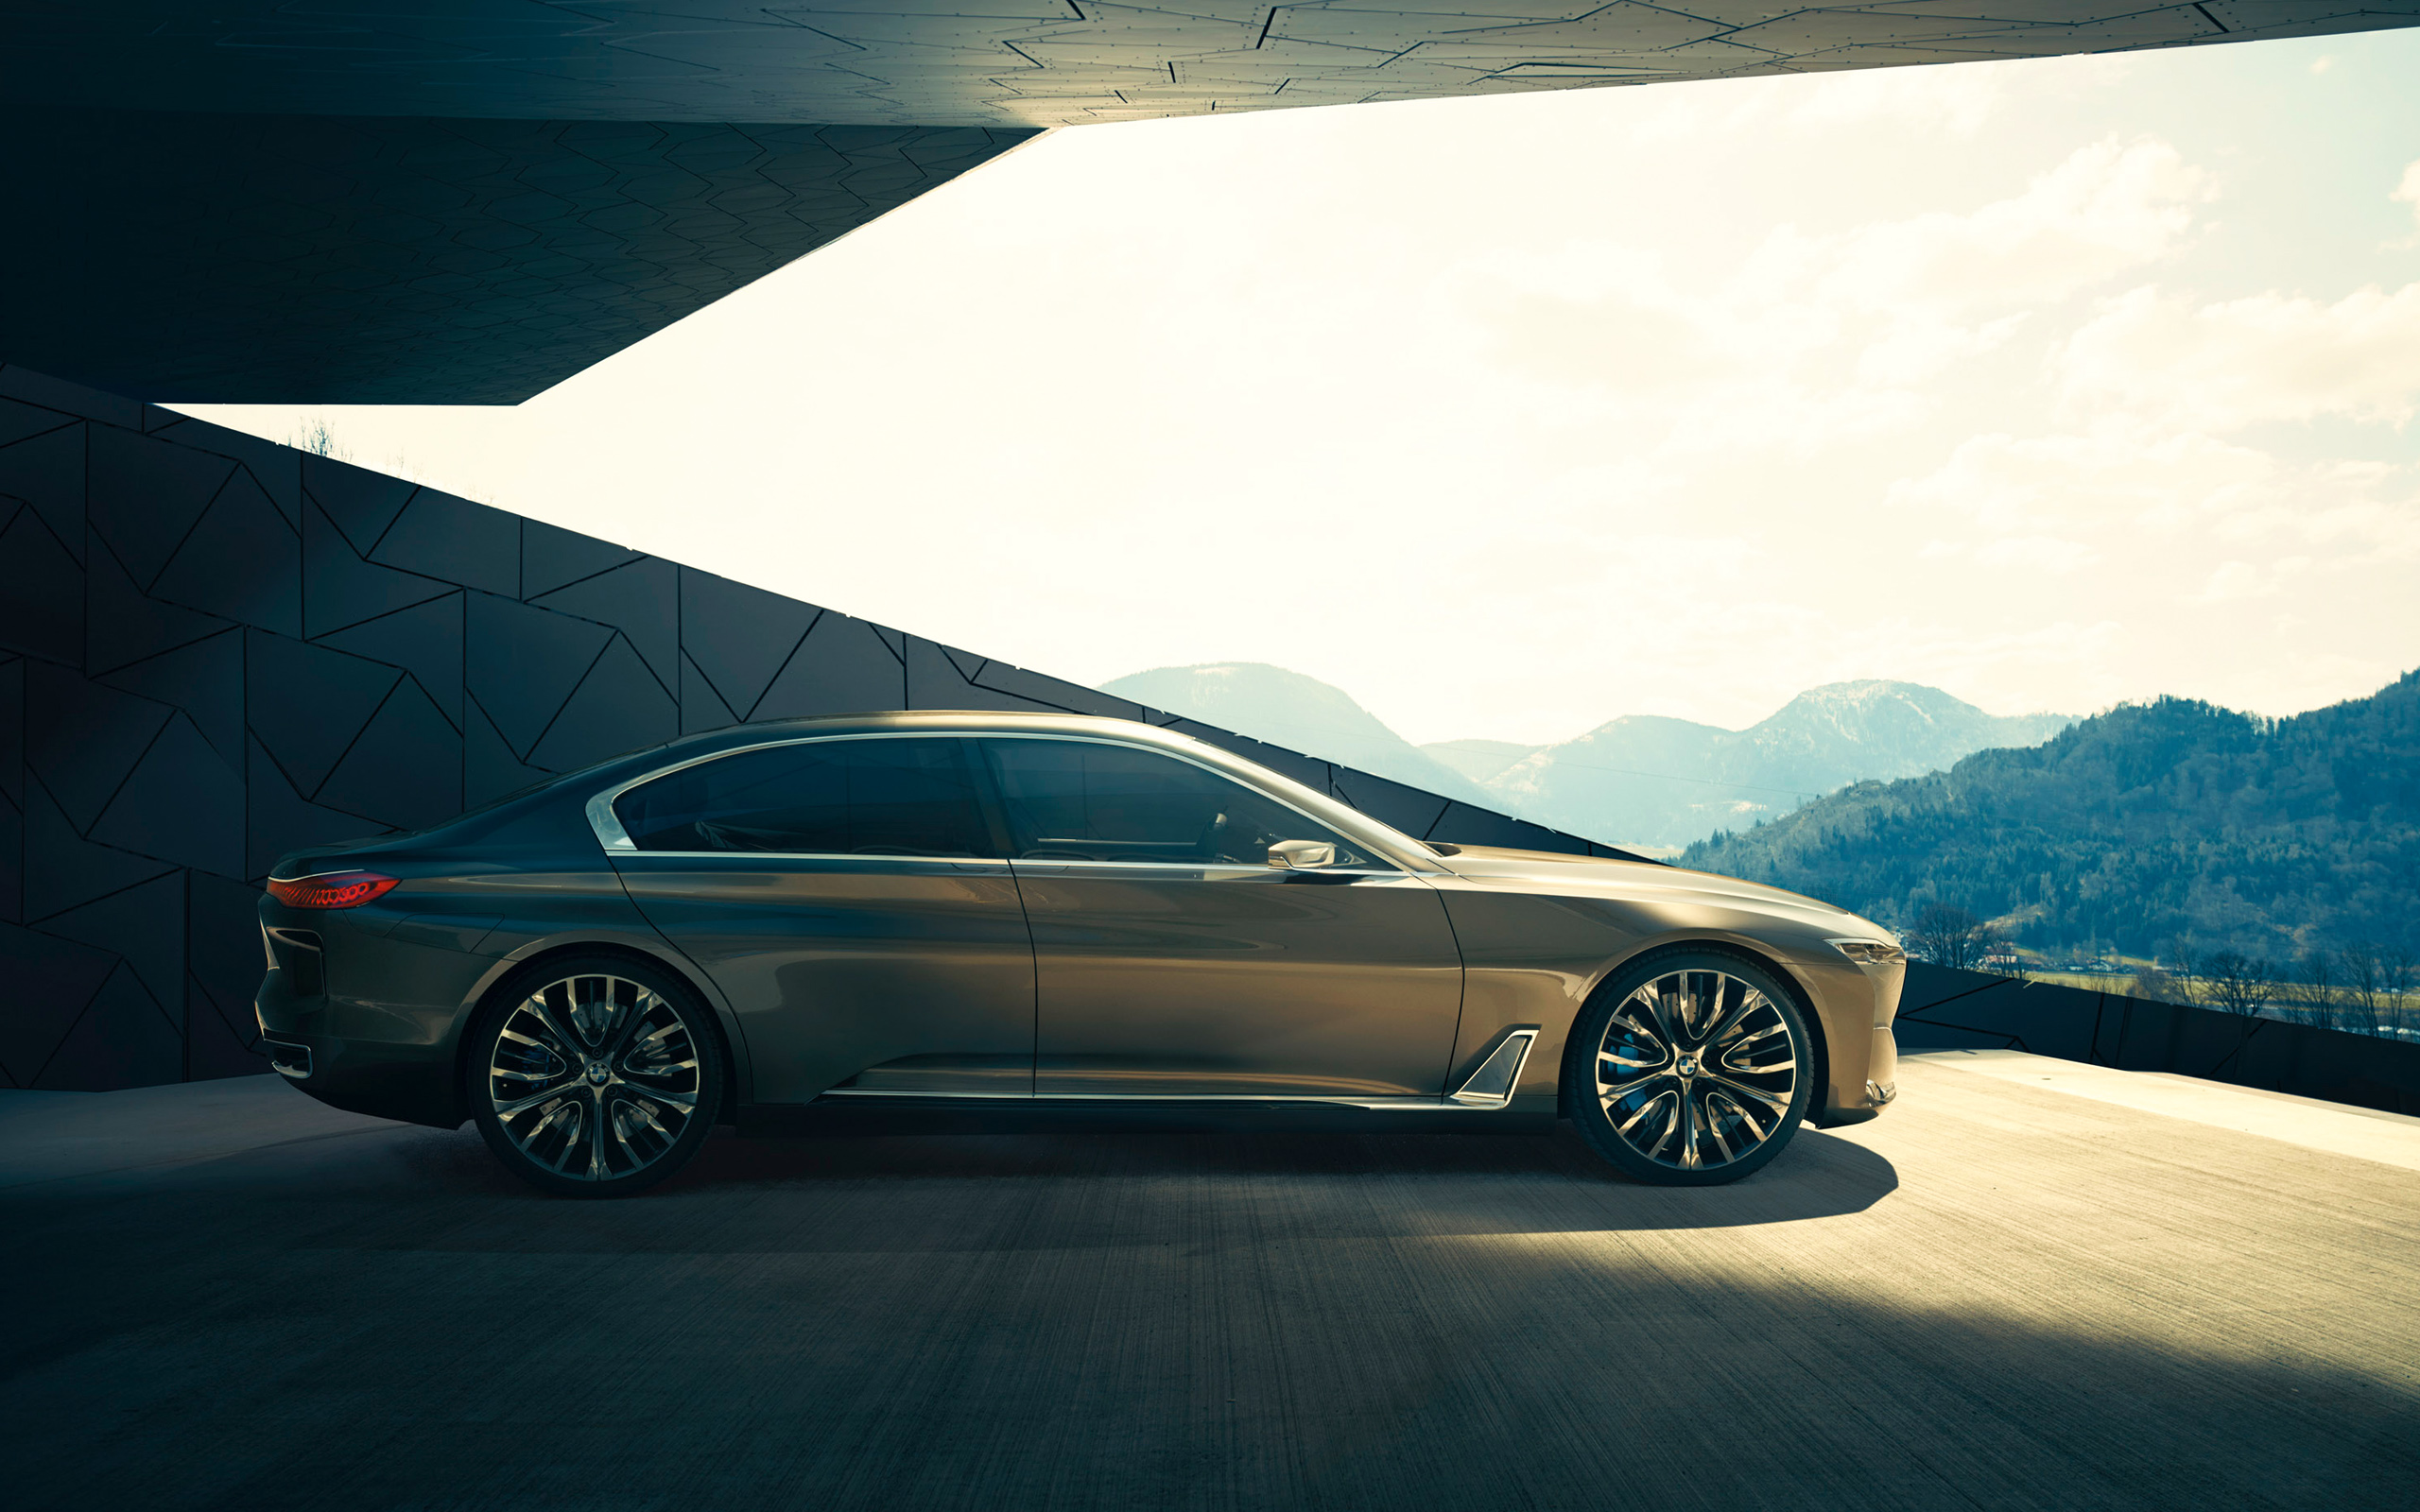 BMW Vision Future Luxury Concept 3 Wallpaper | HD Car ...